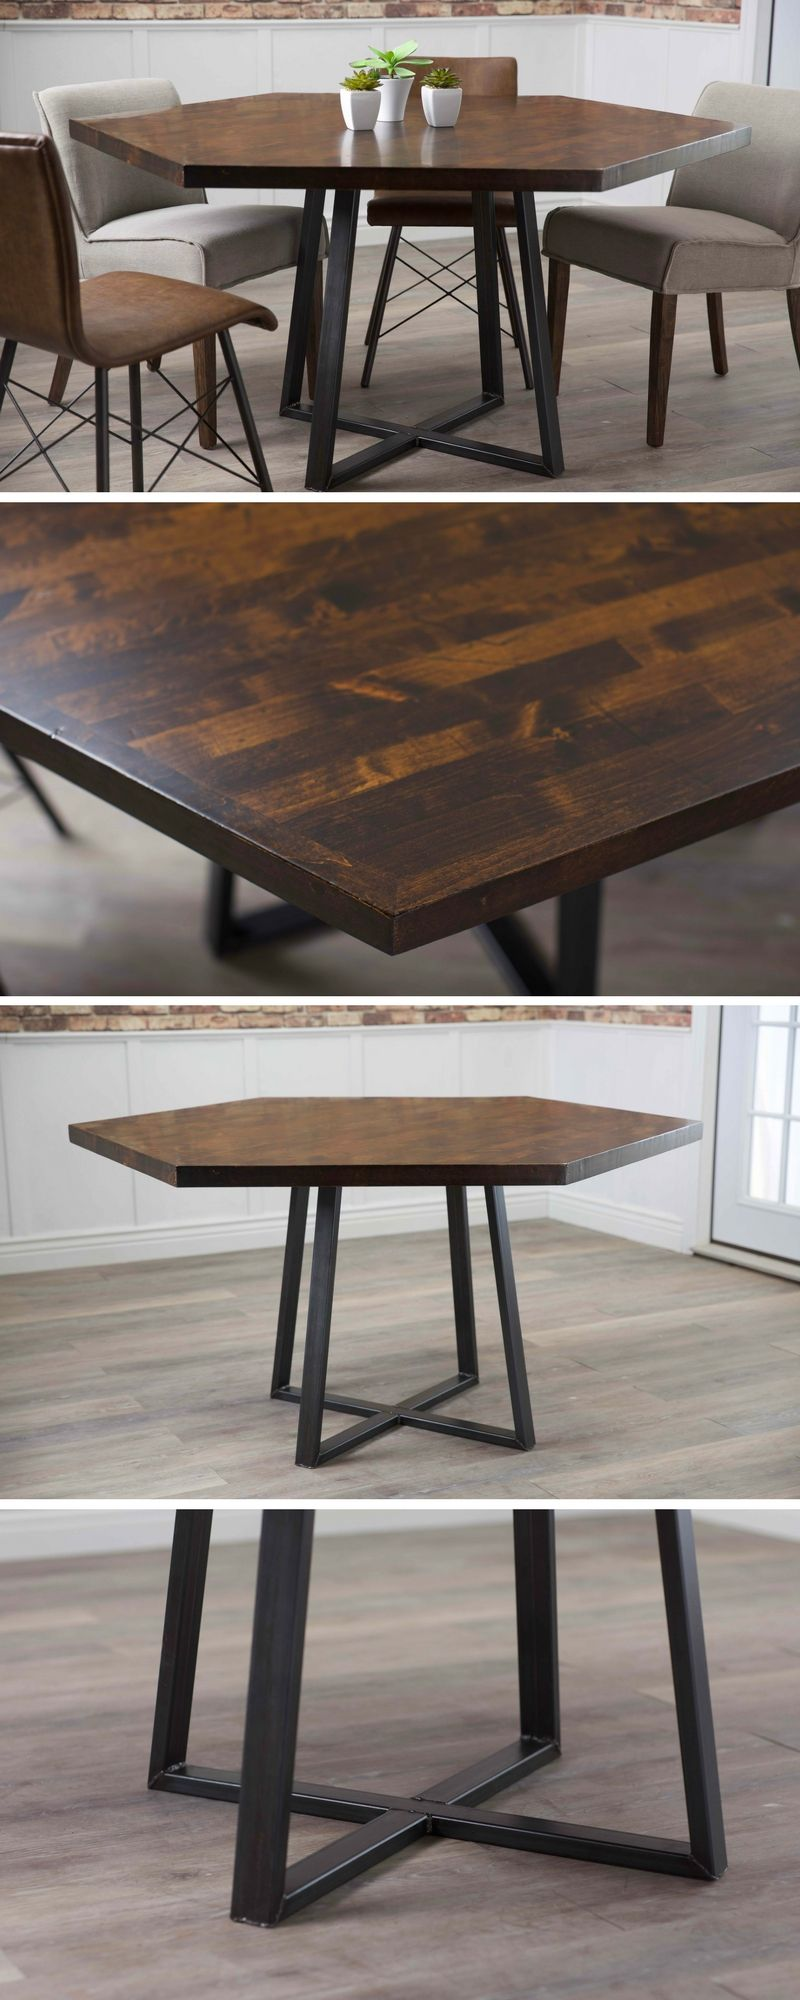 Hexagon Industrial Steel Pedestal Table Dining Table Custom